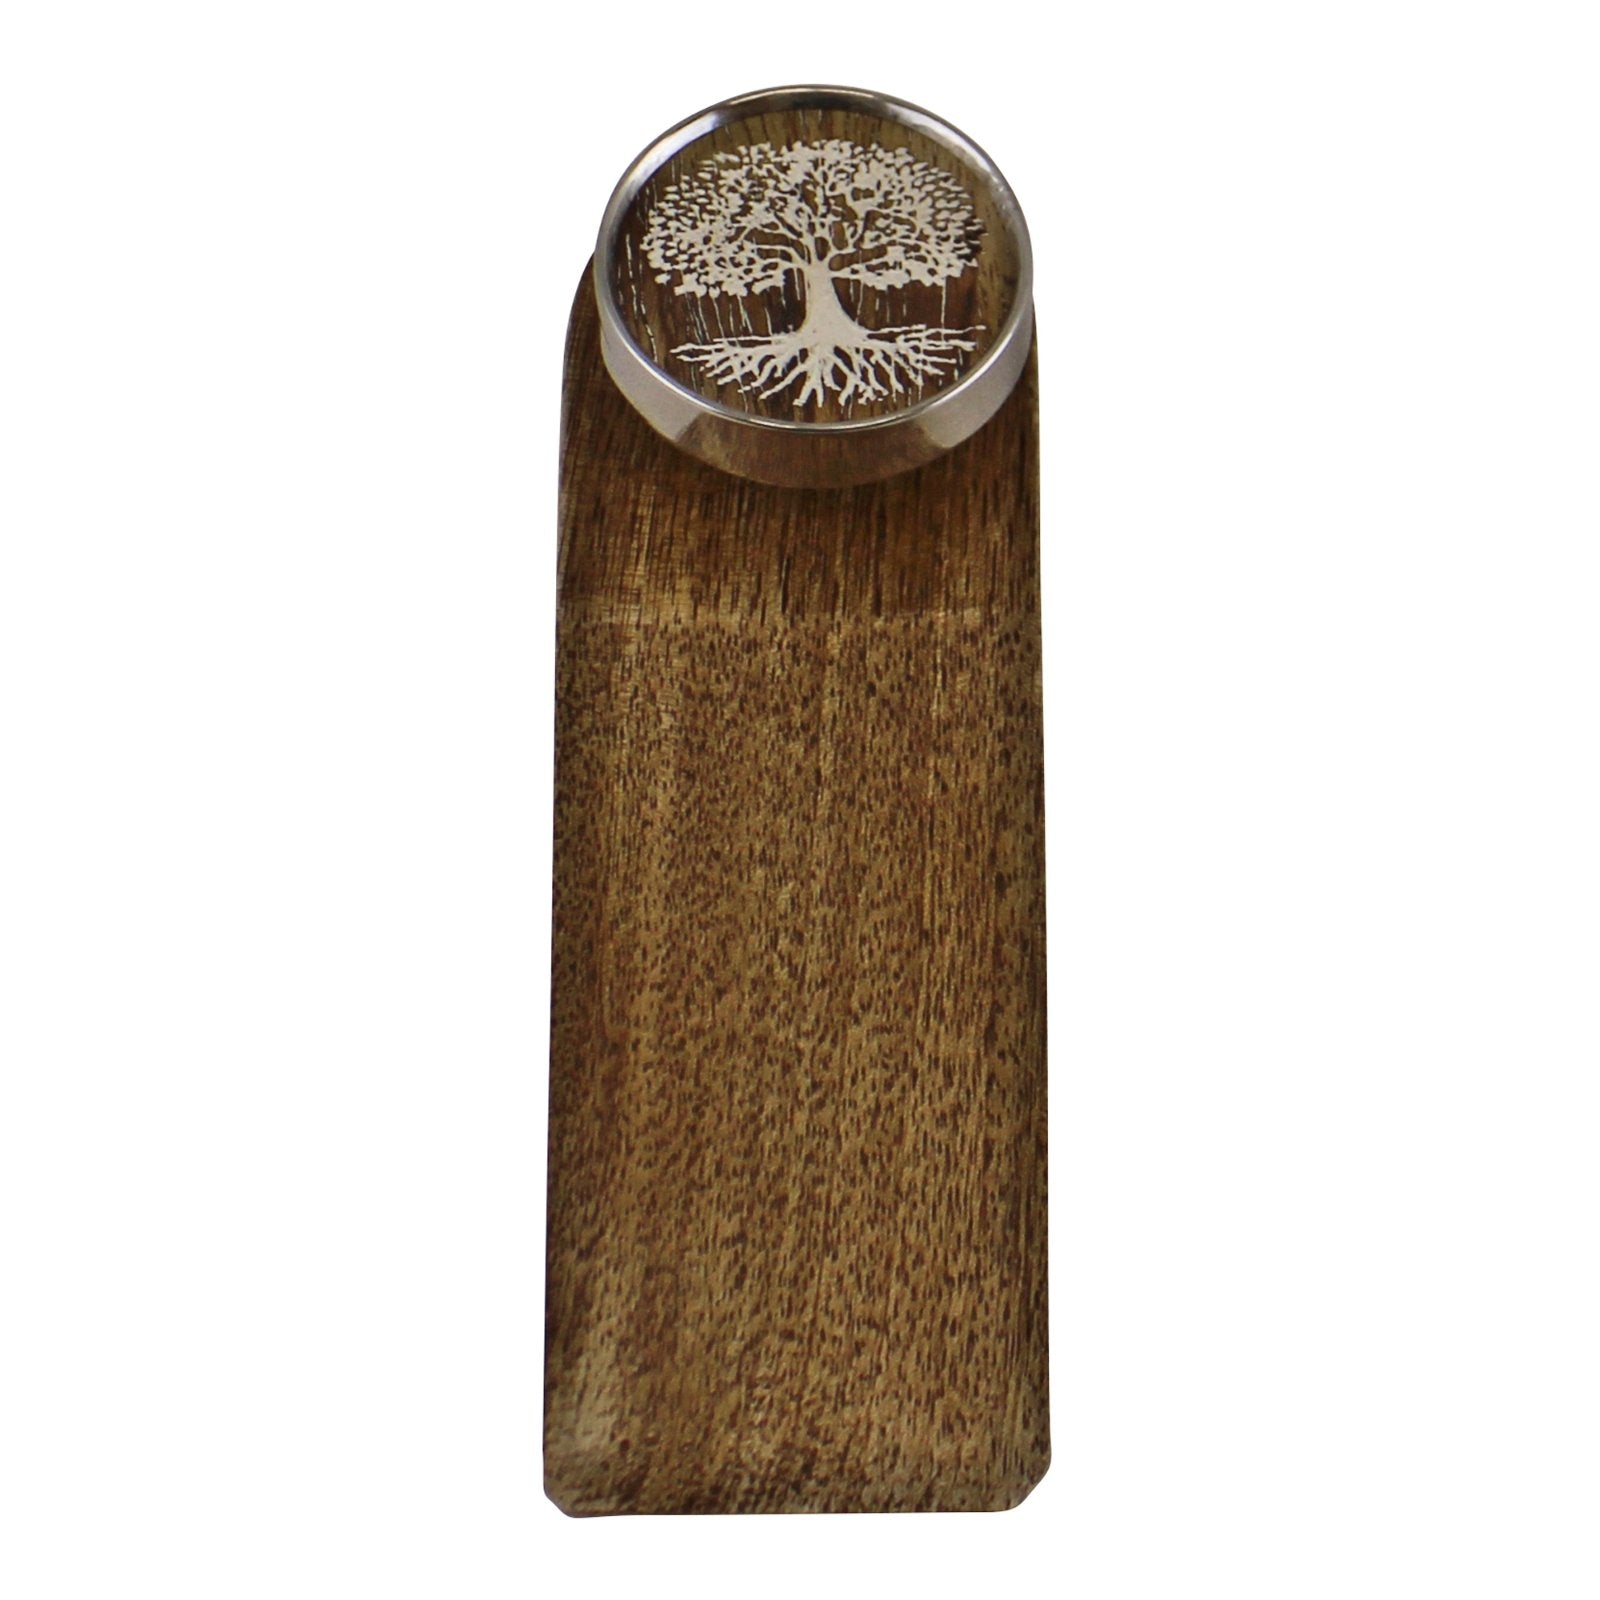 Decorative Wooden Doorstop, Tree Of Life Silver Design, Building Materials by Gifts24-7